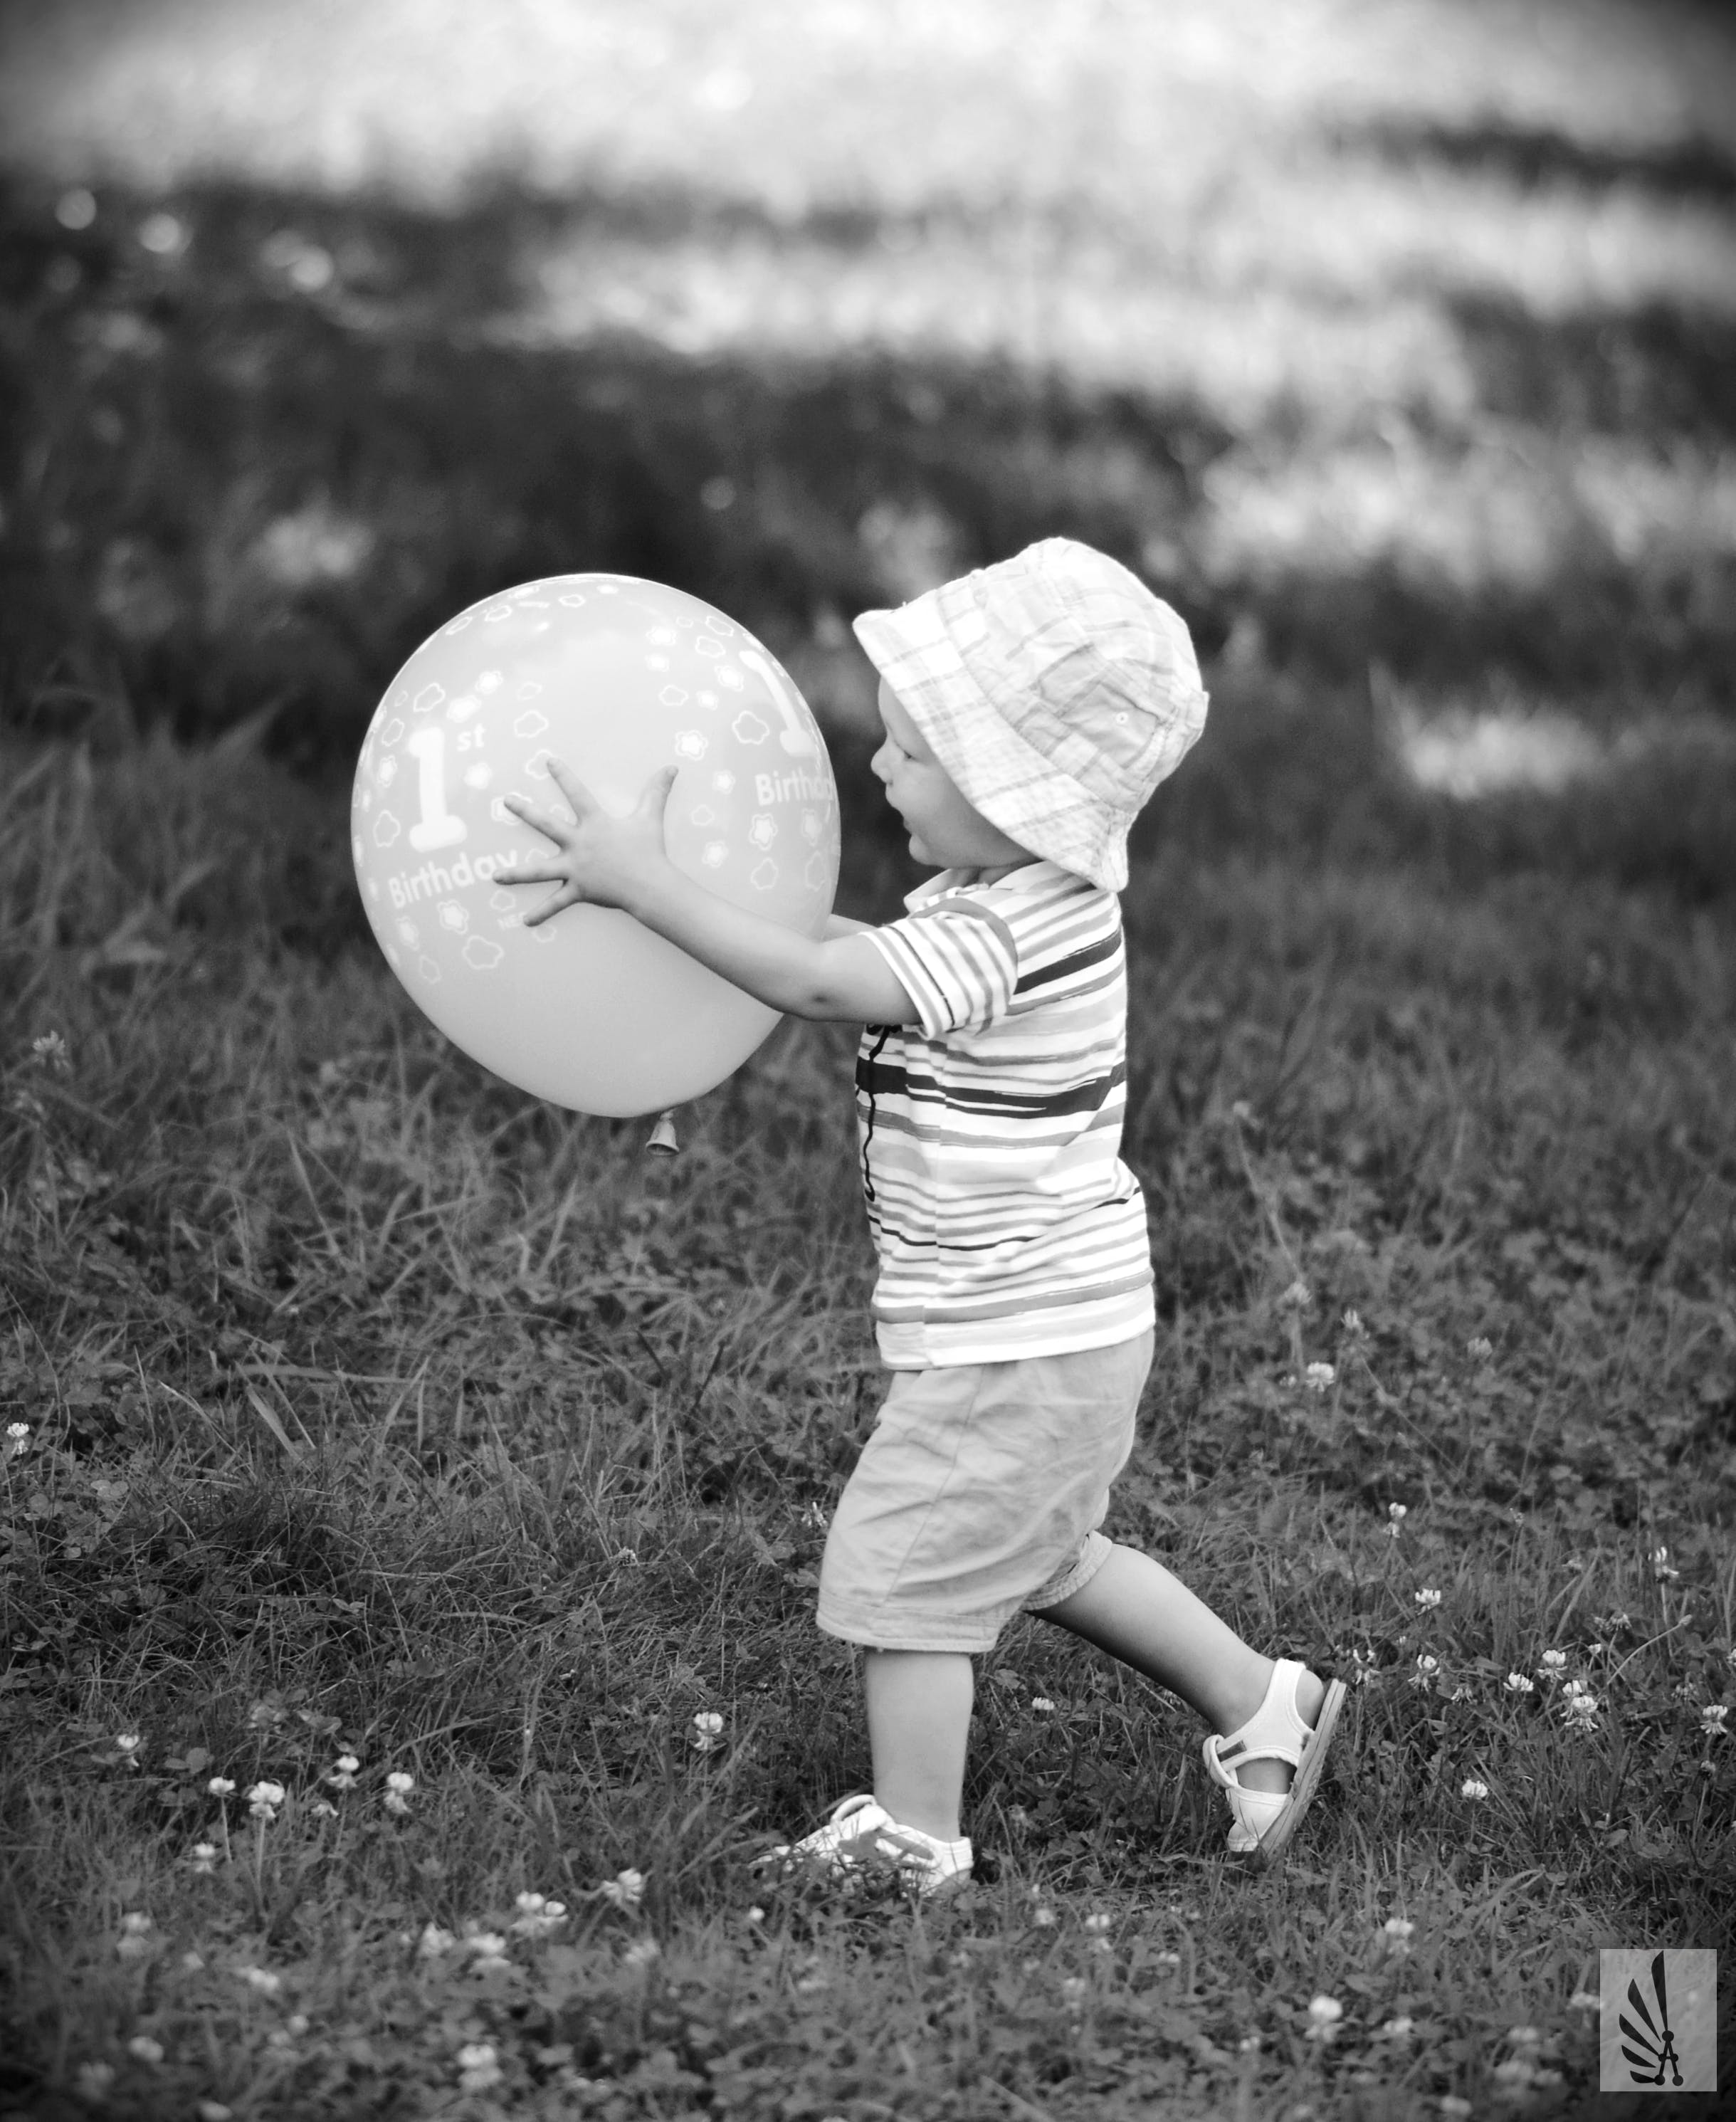 Free stock photo of baby, balloon, black and white, hat